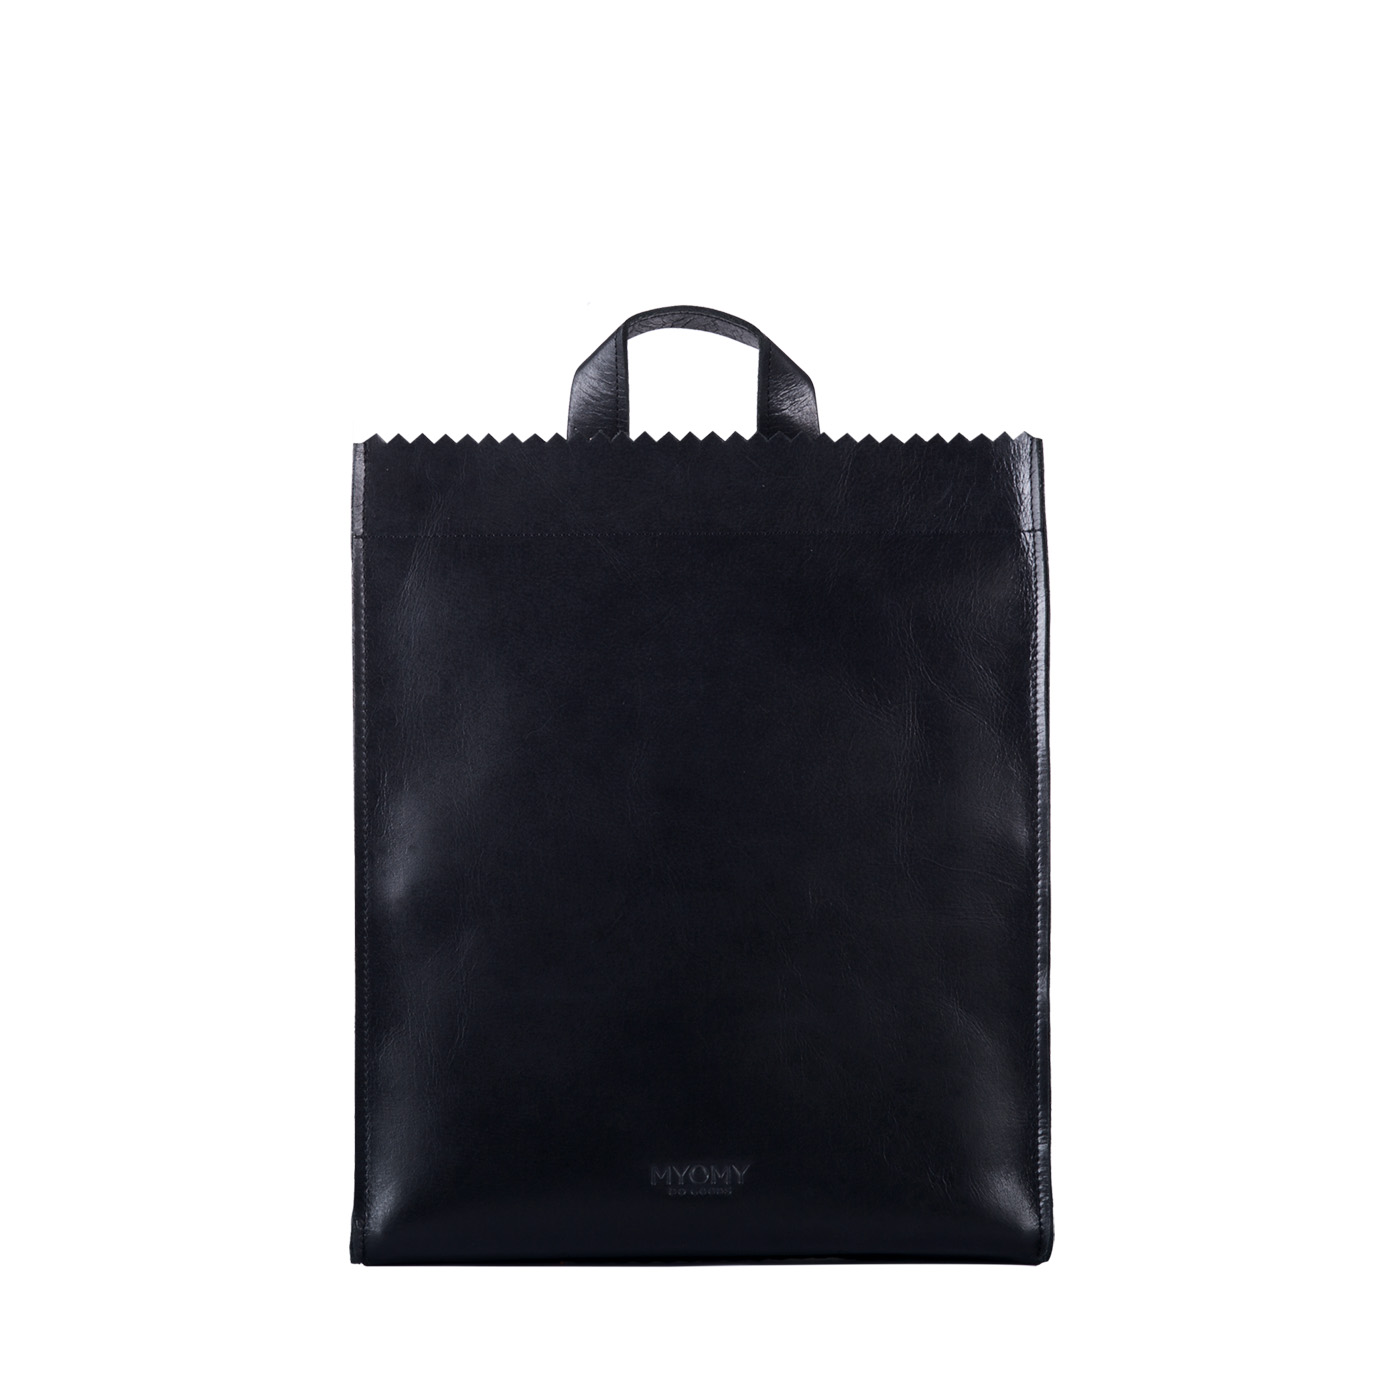 MY PAPER BAG Back bag – hunter waxy black